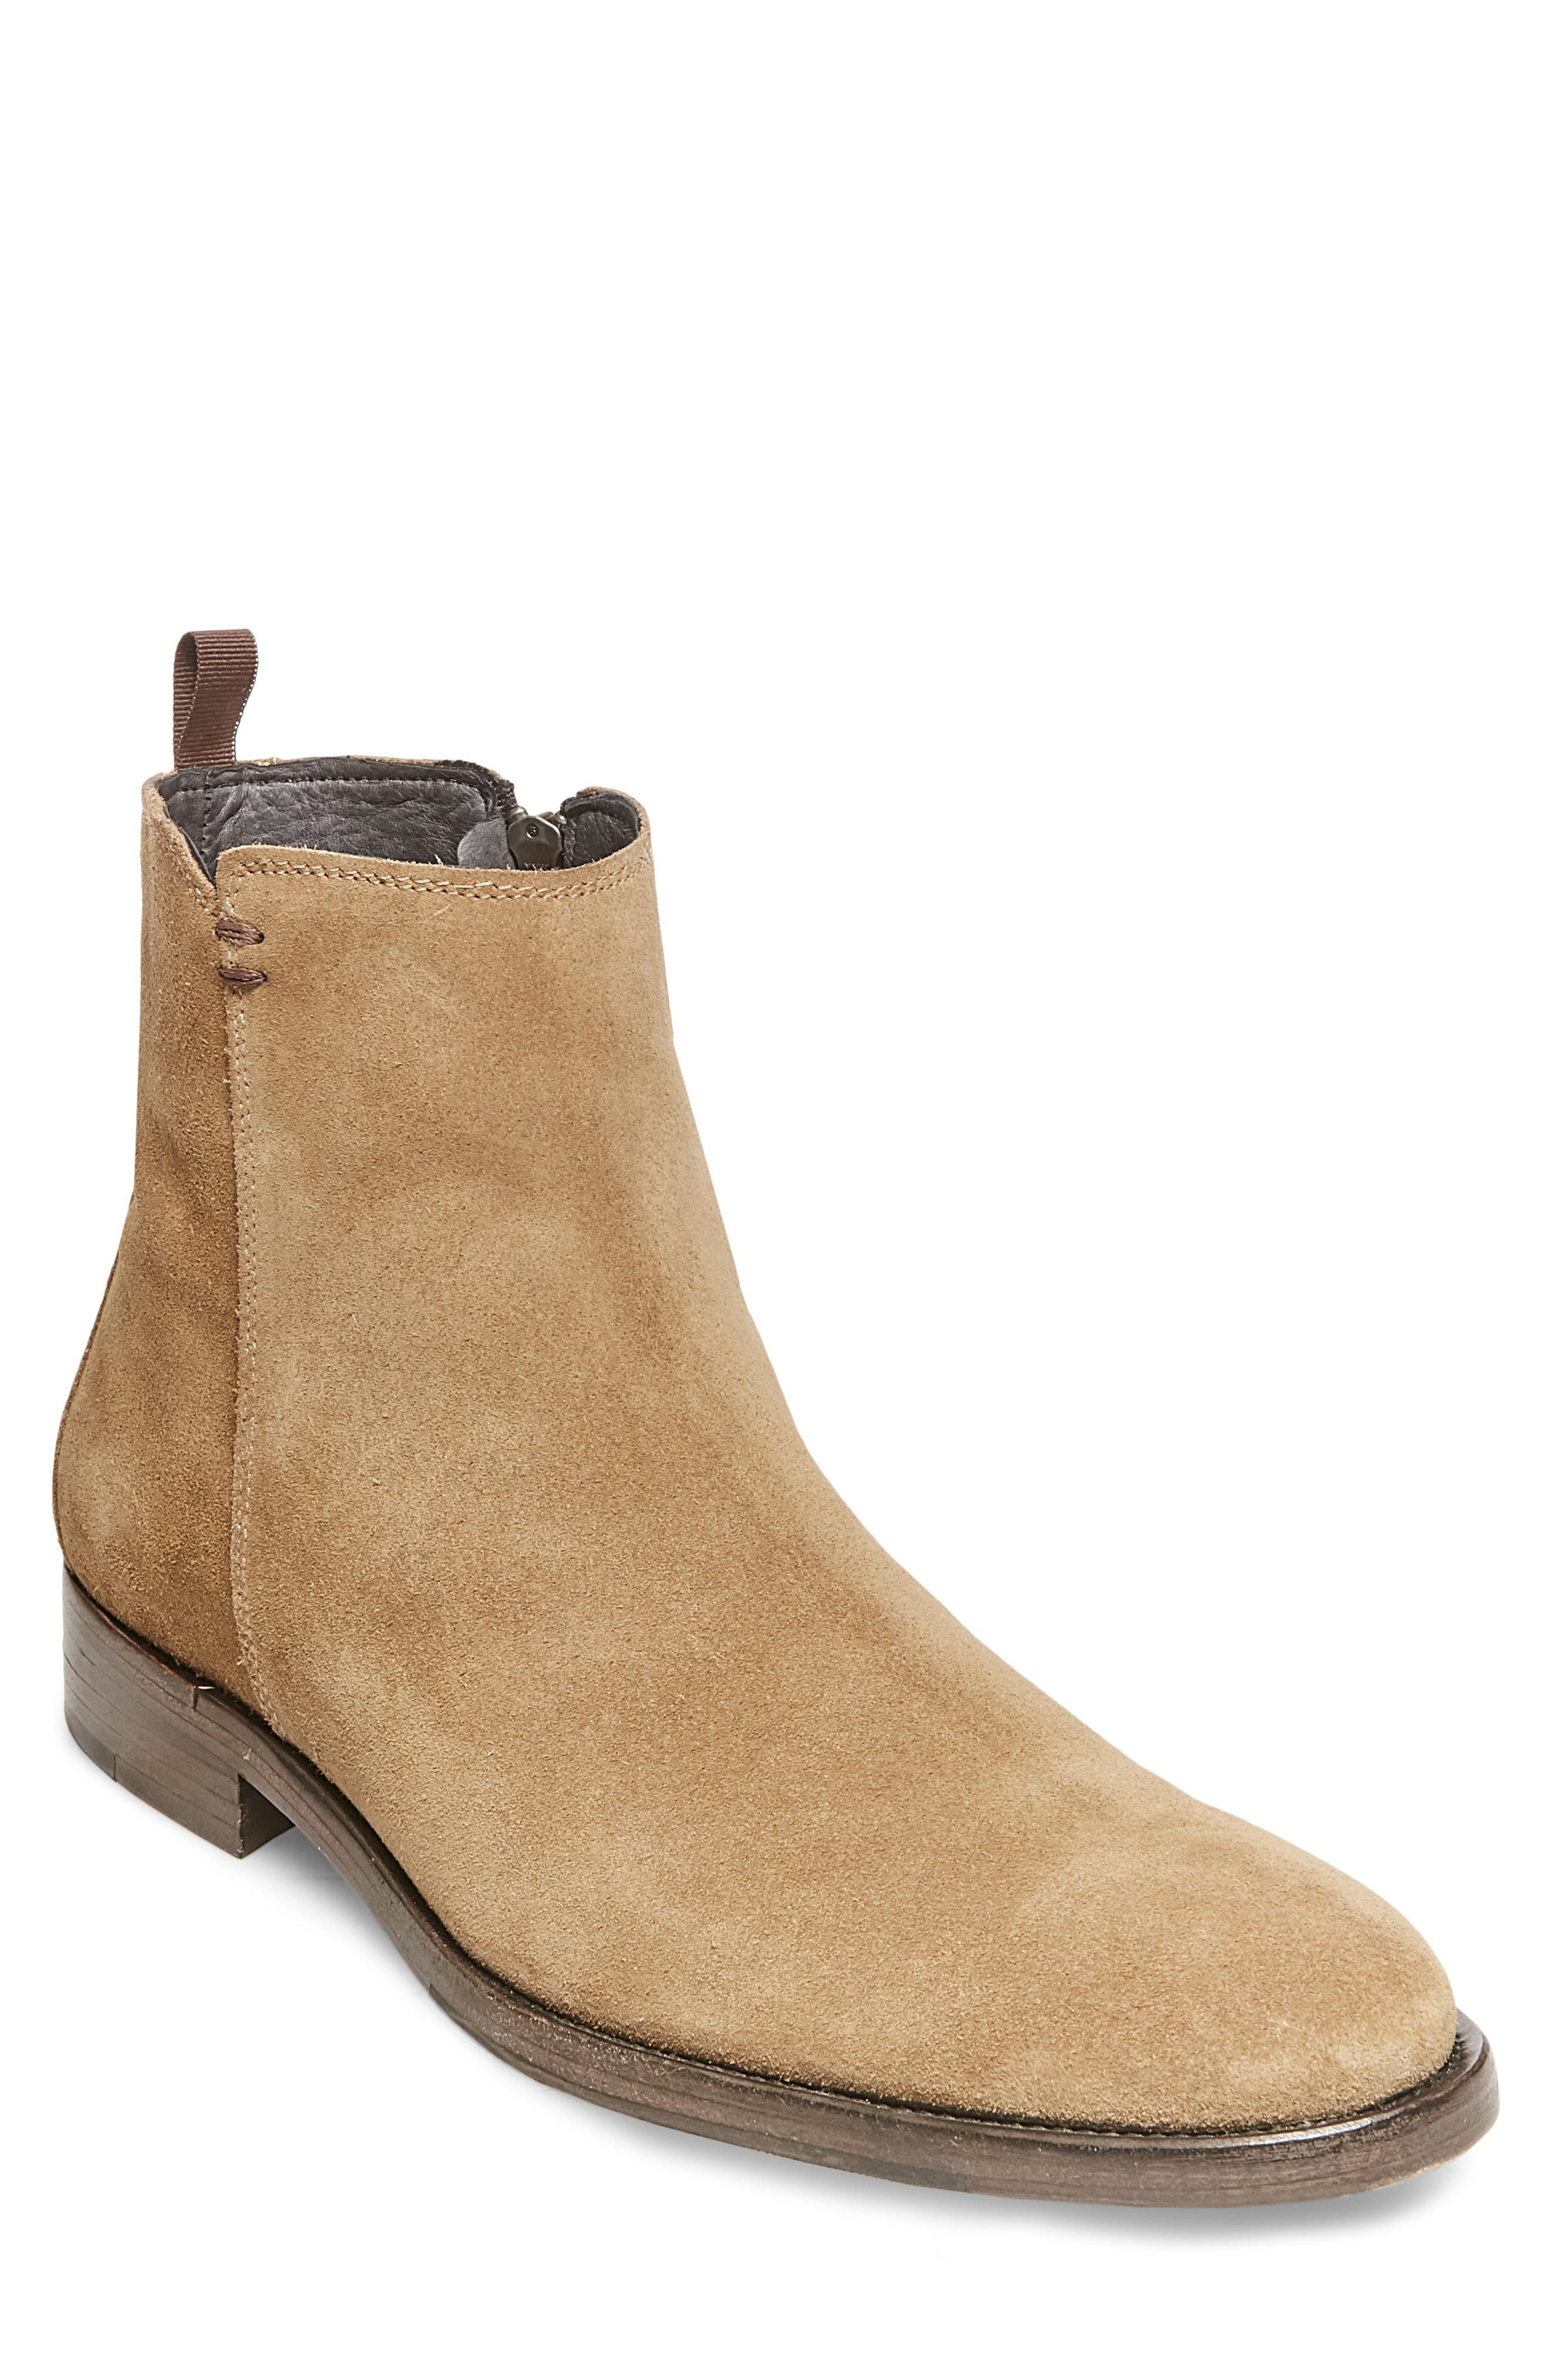 Alternate Image 1 Selected - Steve Madden x GQ Fred Zip Boot (Men)